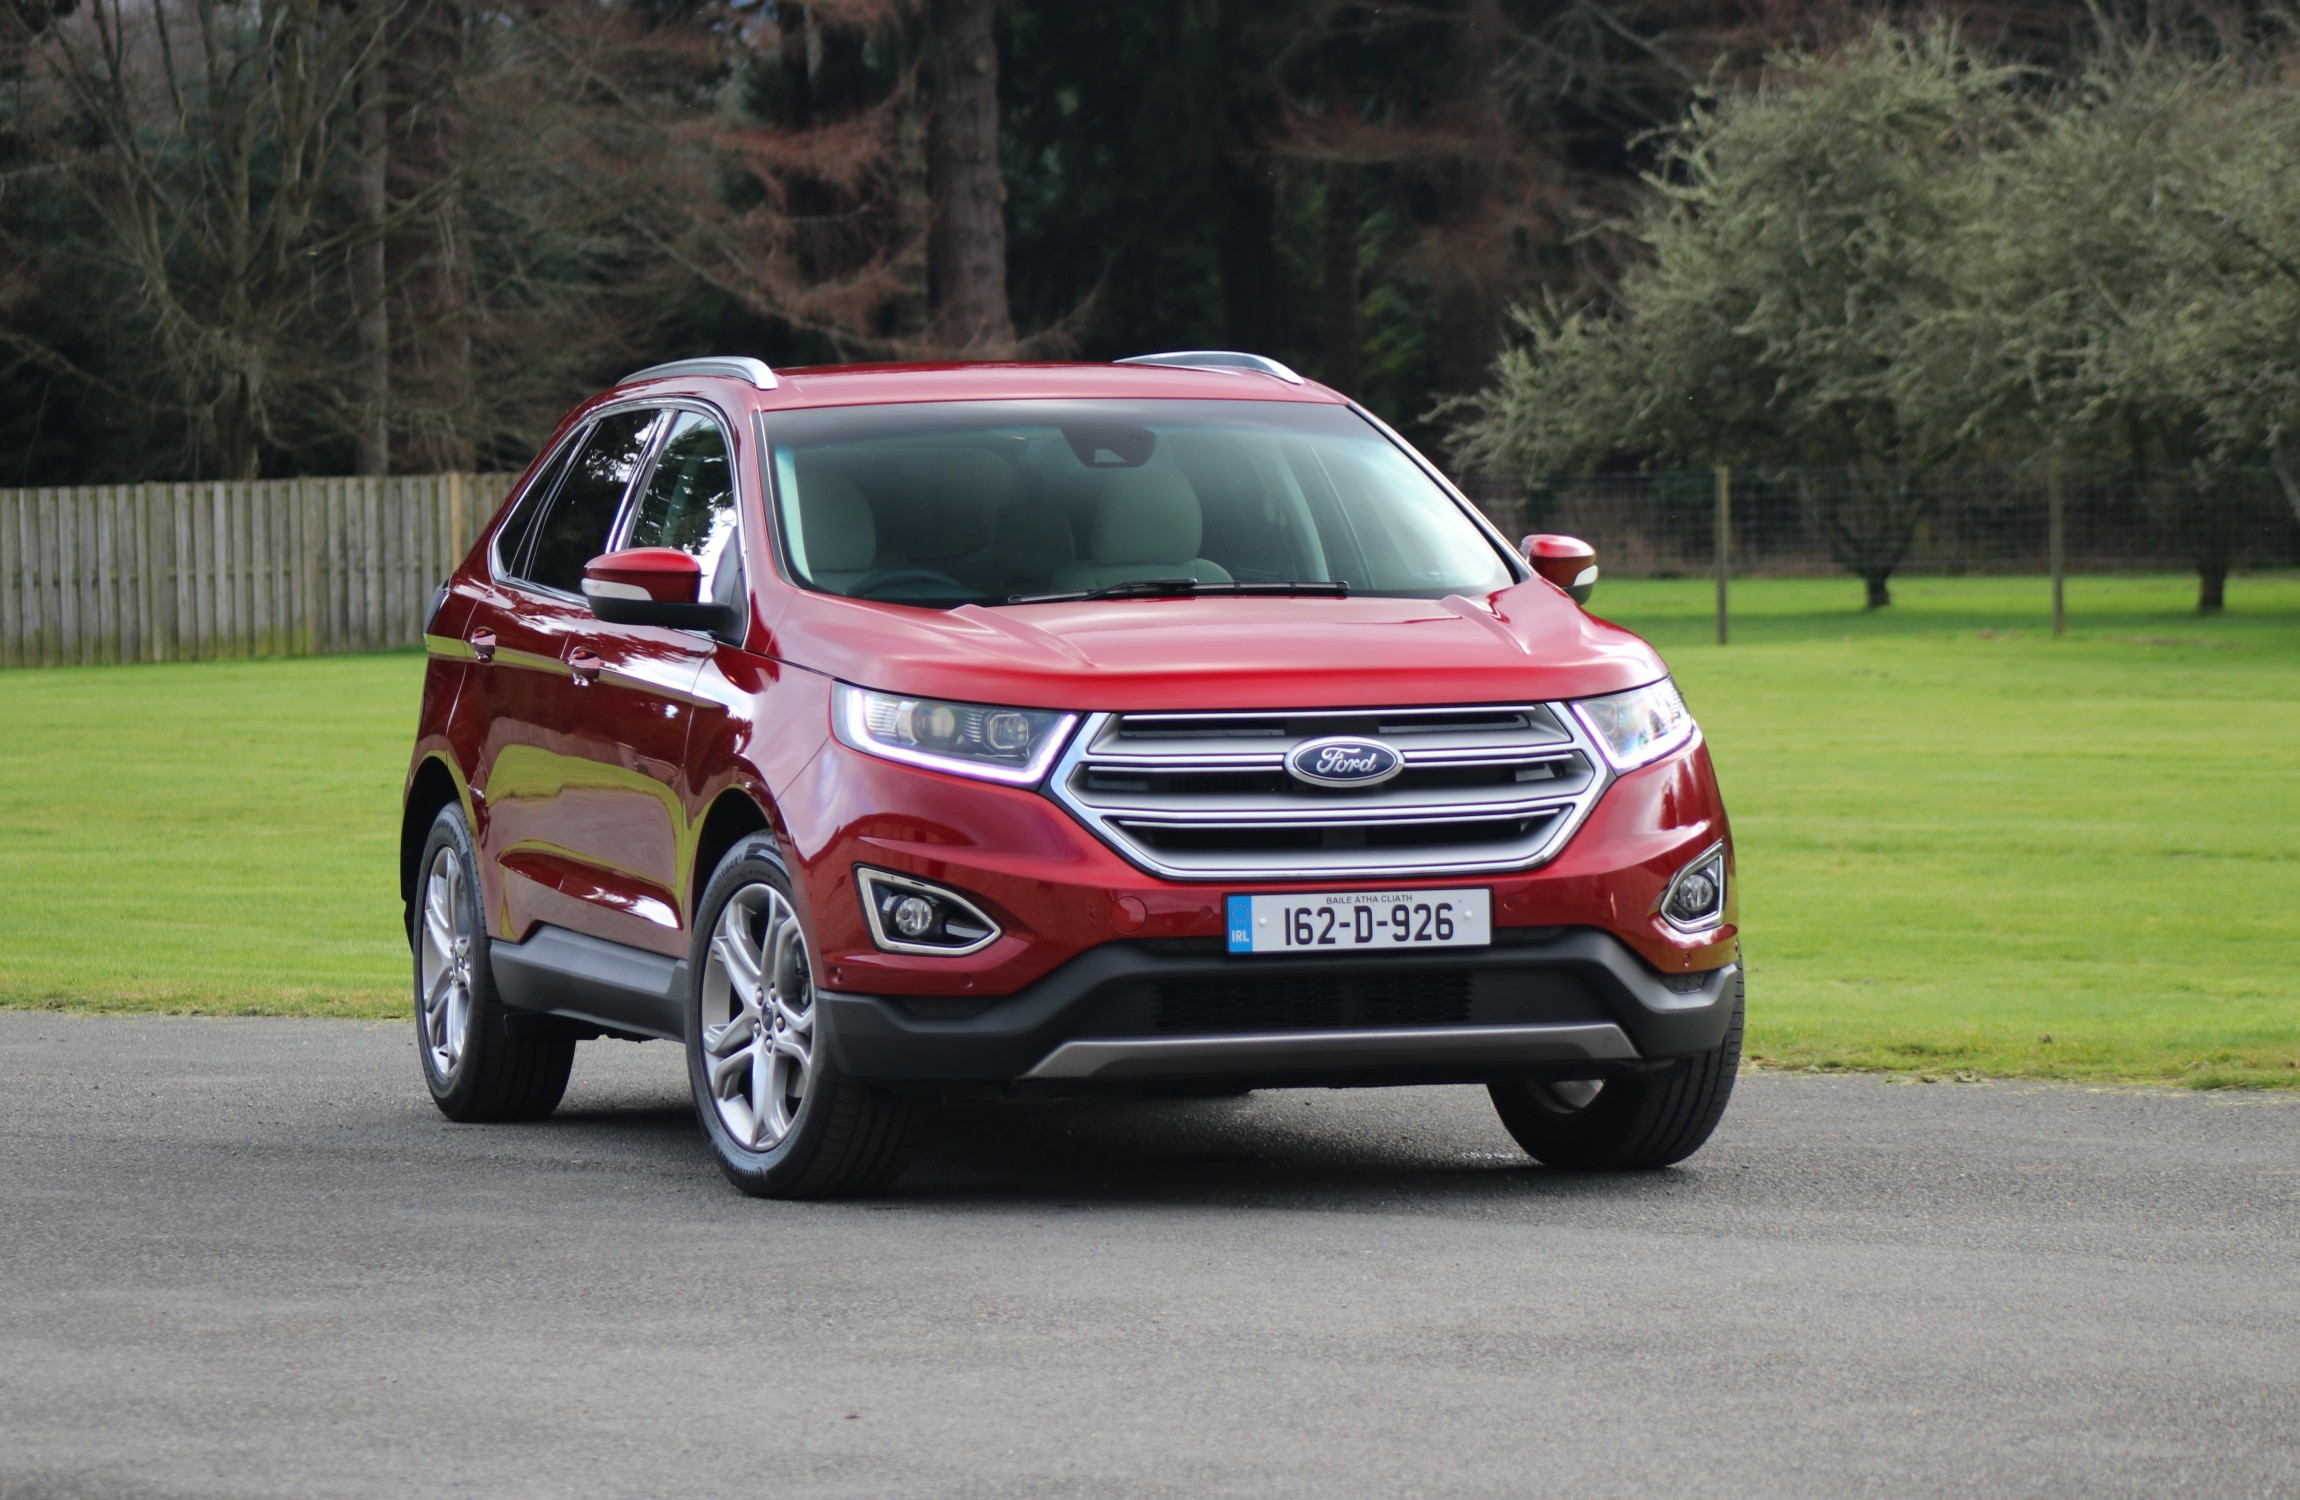 Review The Ford Edge Suv Has A Premium Price Tag So Can It Match Its Premium Rivals